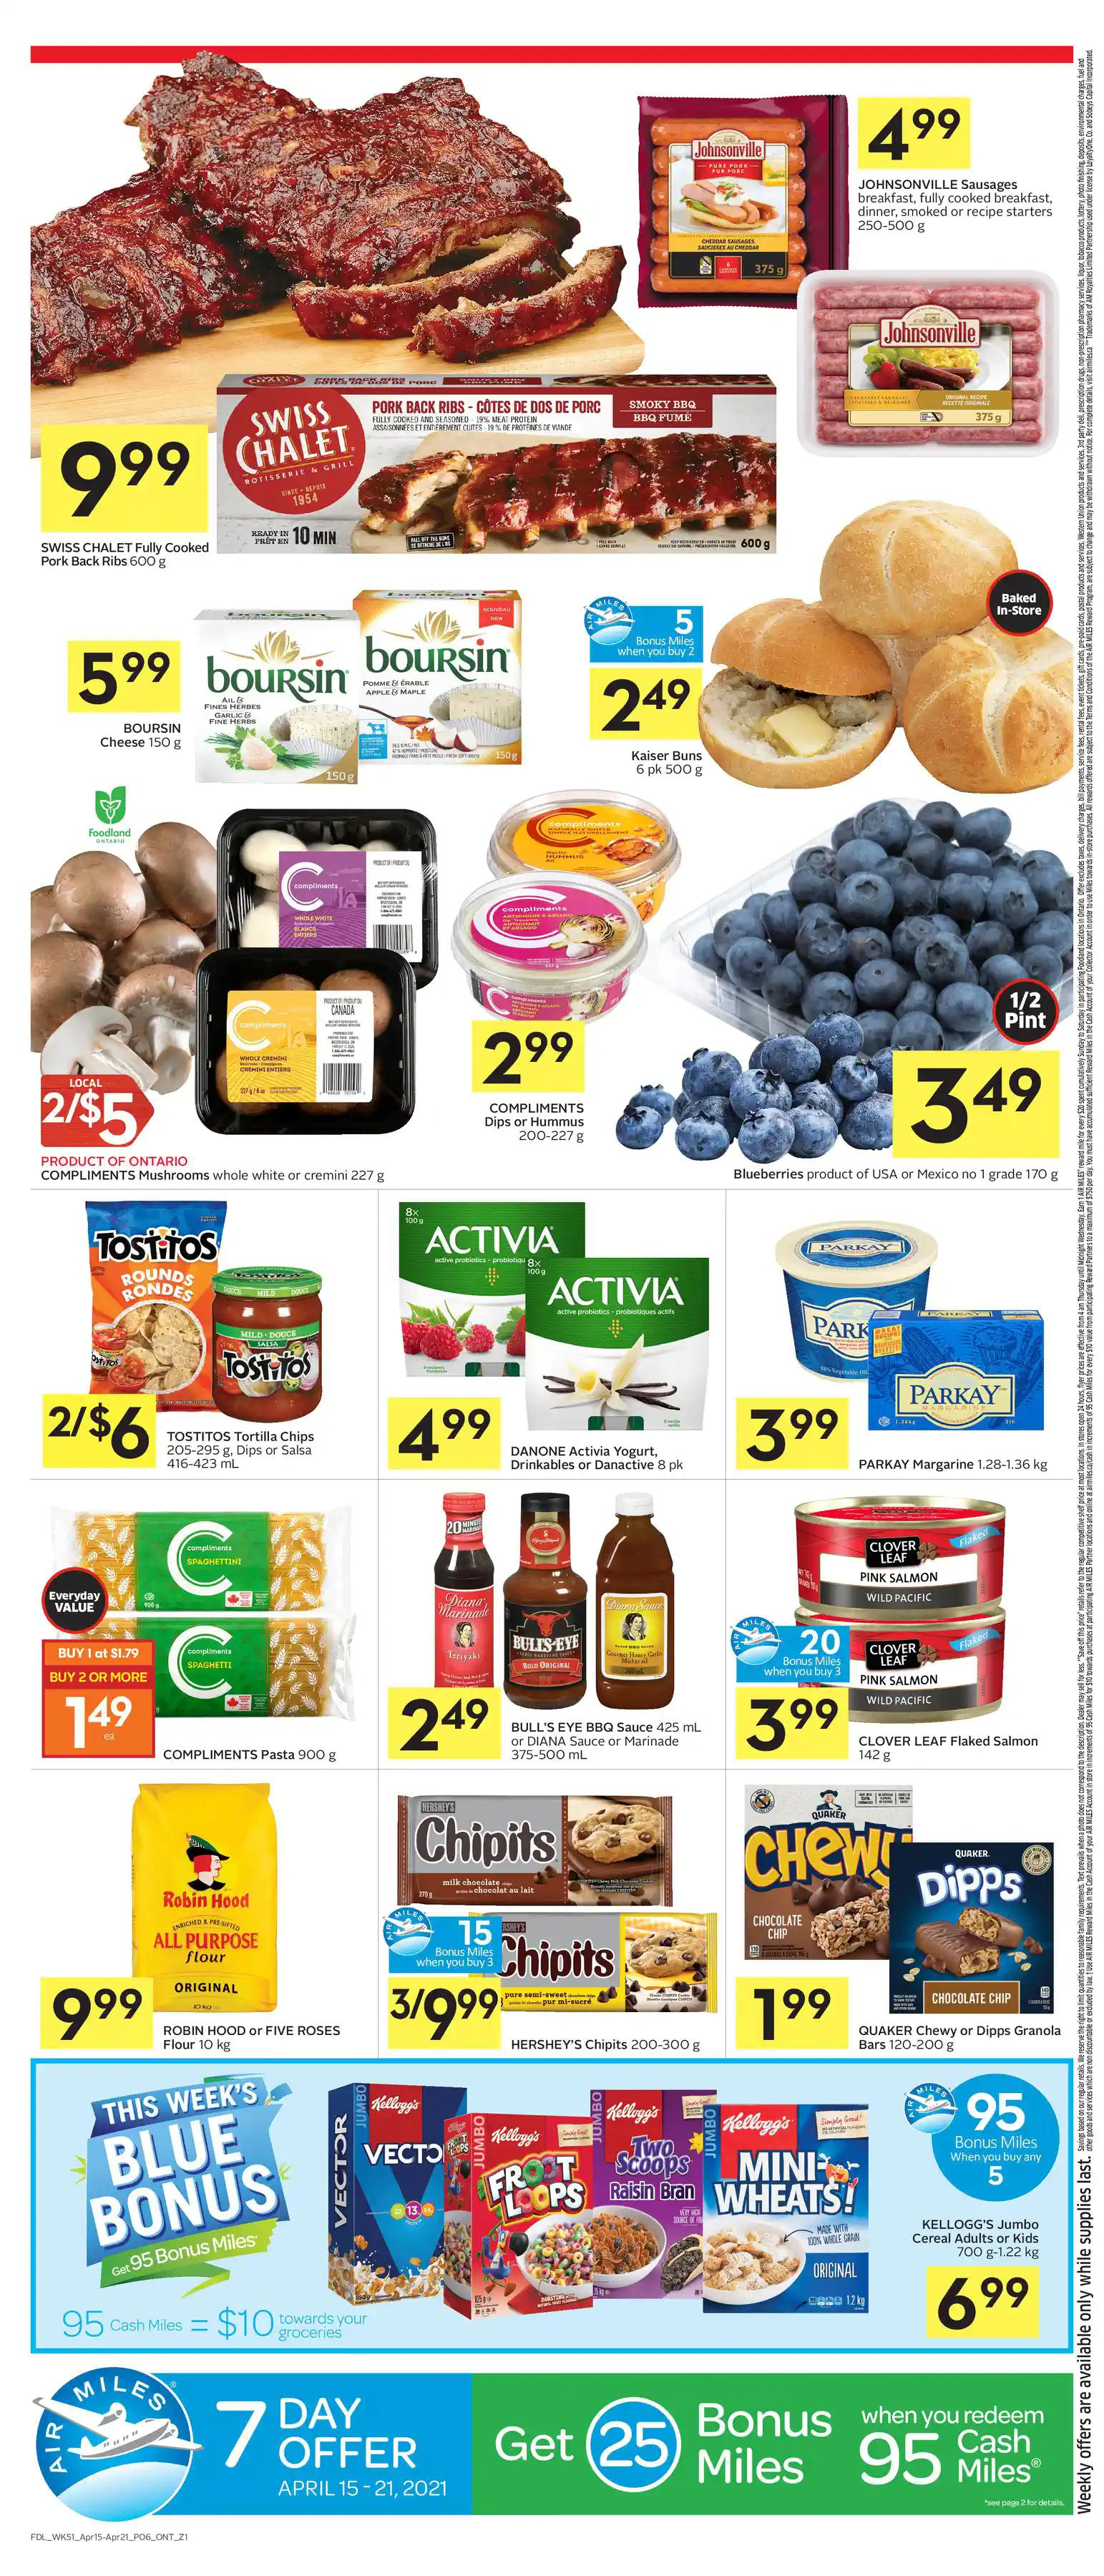 Foodland - Weekly Flyer Specials - Page 6